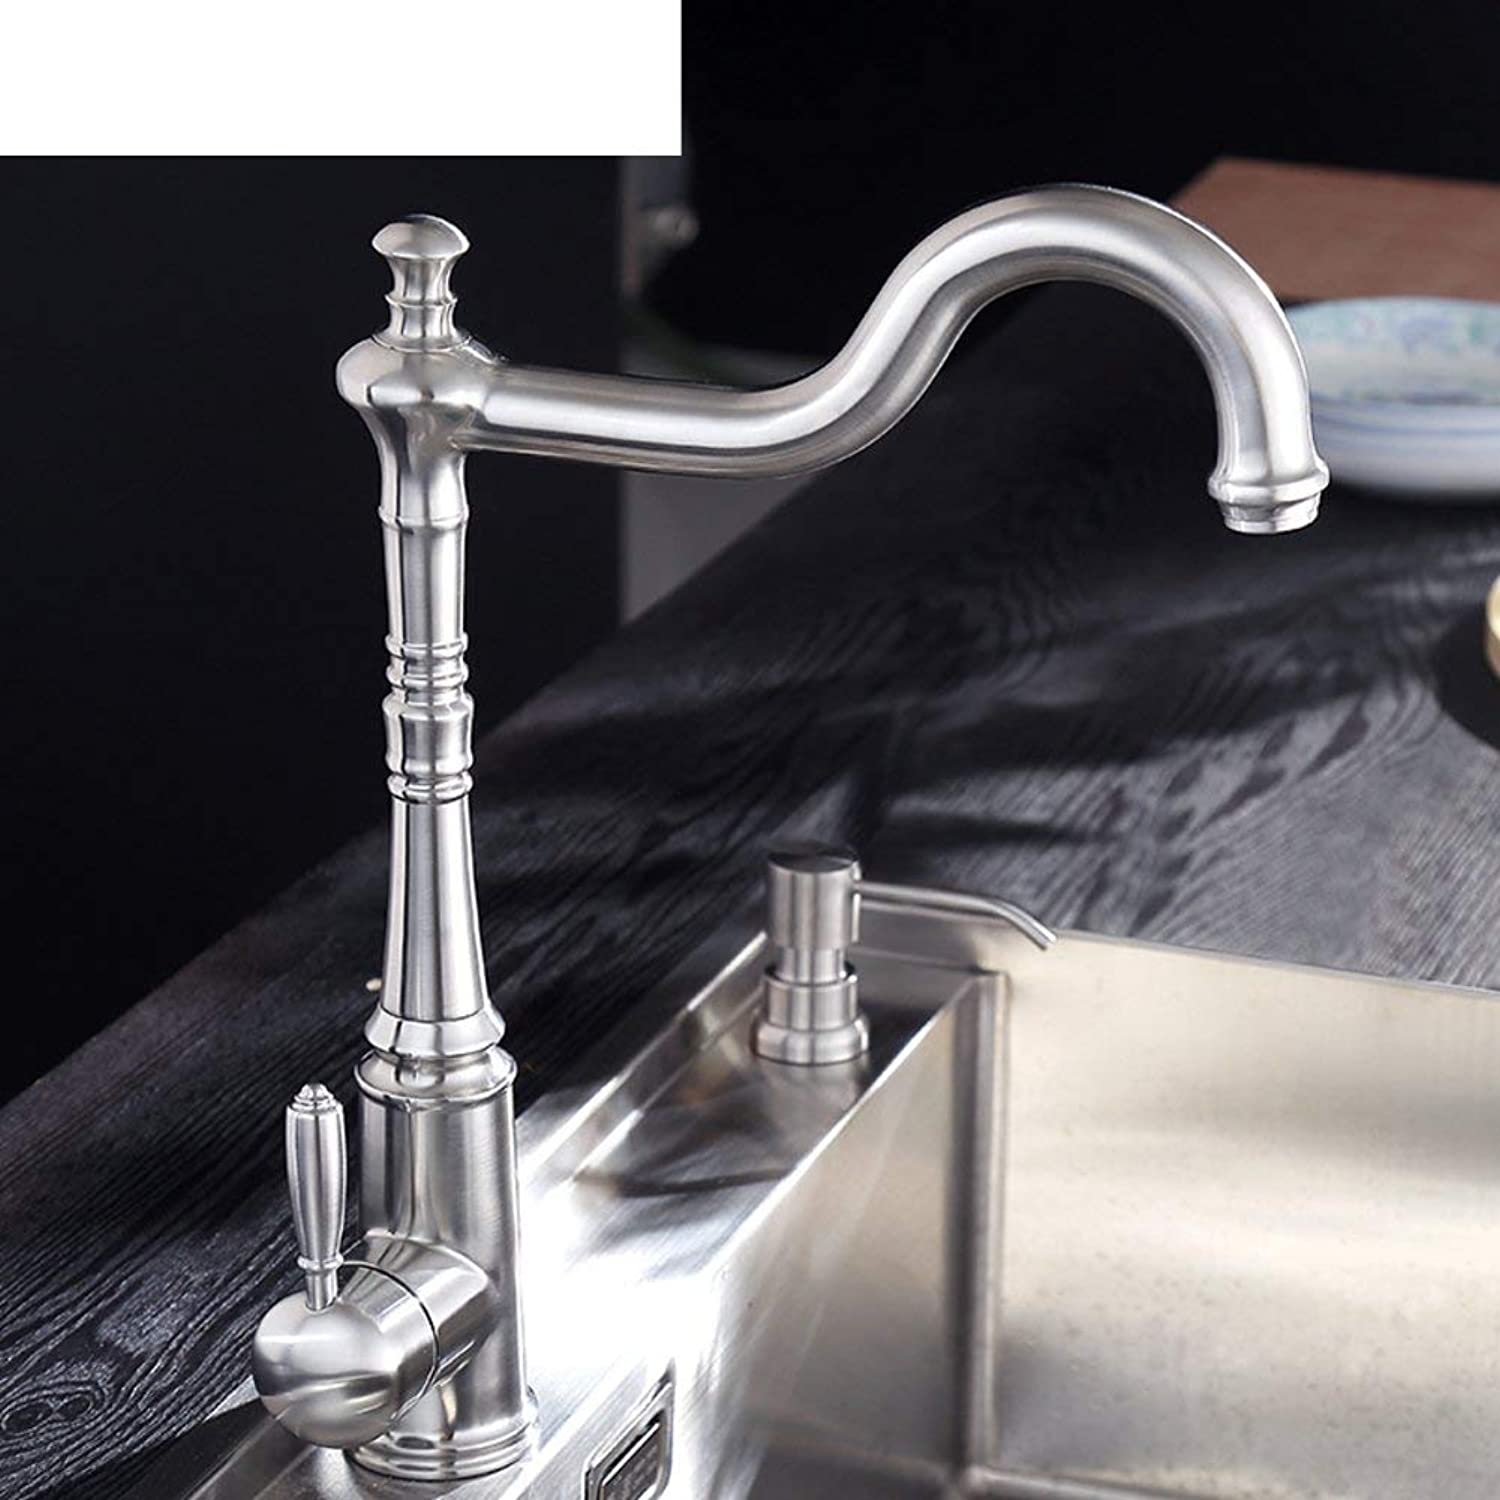 Oudan European kitchen faucet Antique304Stainless steel faucet Retro kitchen sink faucet hot and cold basin (color   -, Size   -)